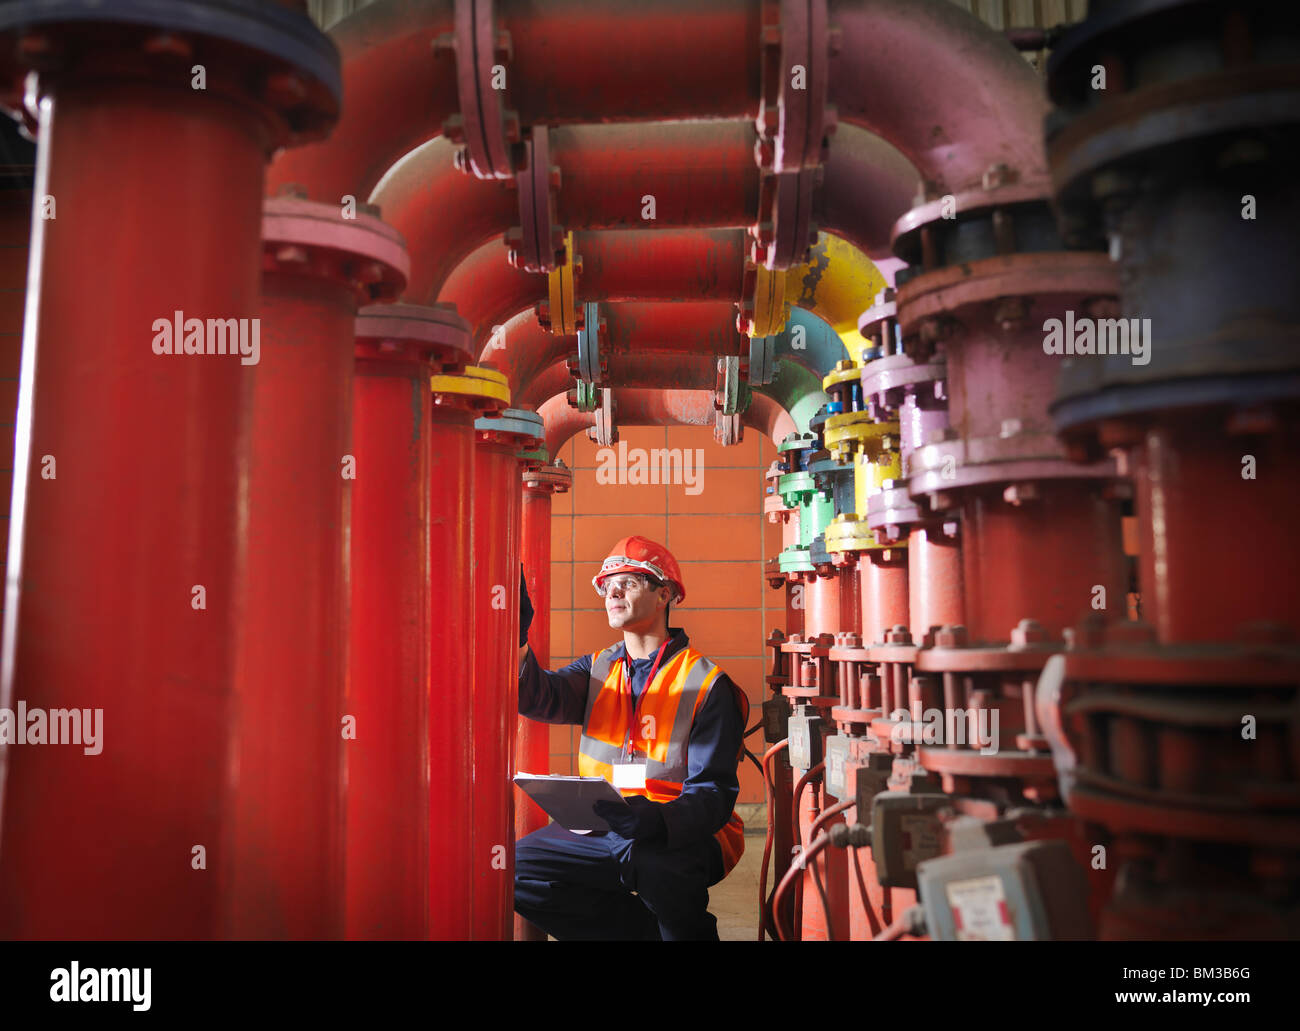 Worker In Coal Fired Power station - Stock Image